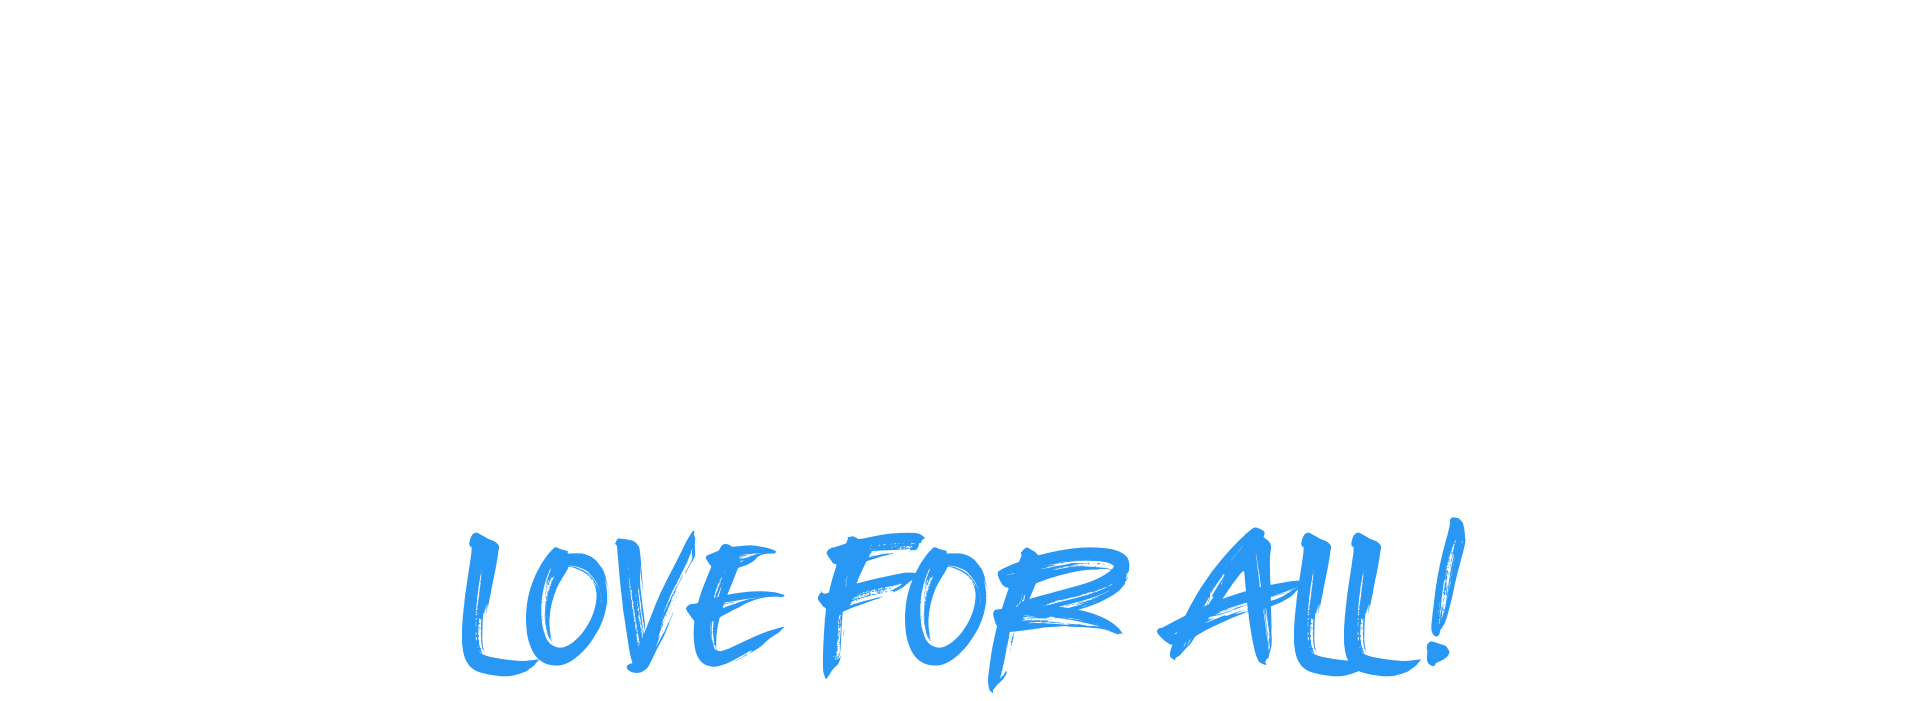 We strive to be a church with relevant teaching, passionate worship, authentic friendships,joy-filled living, and LOVE for all!